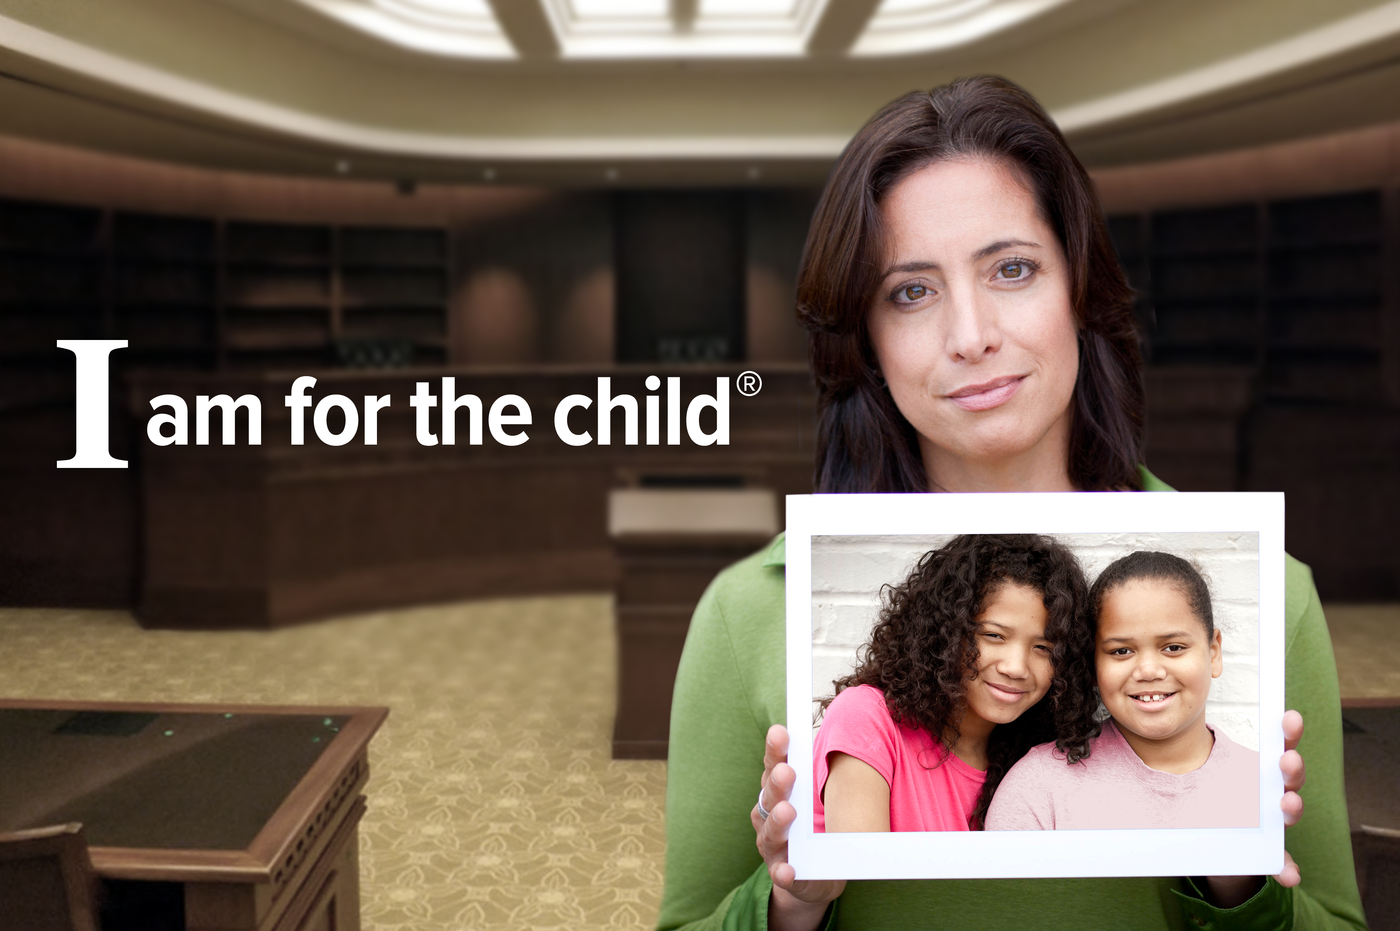 woman holding picture of two girls - I am for the child